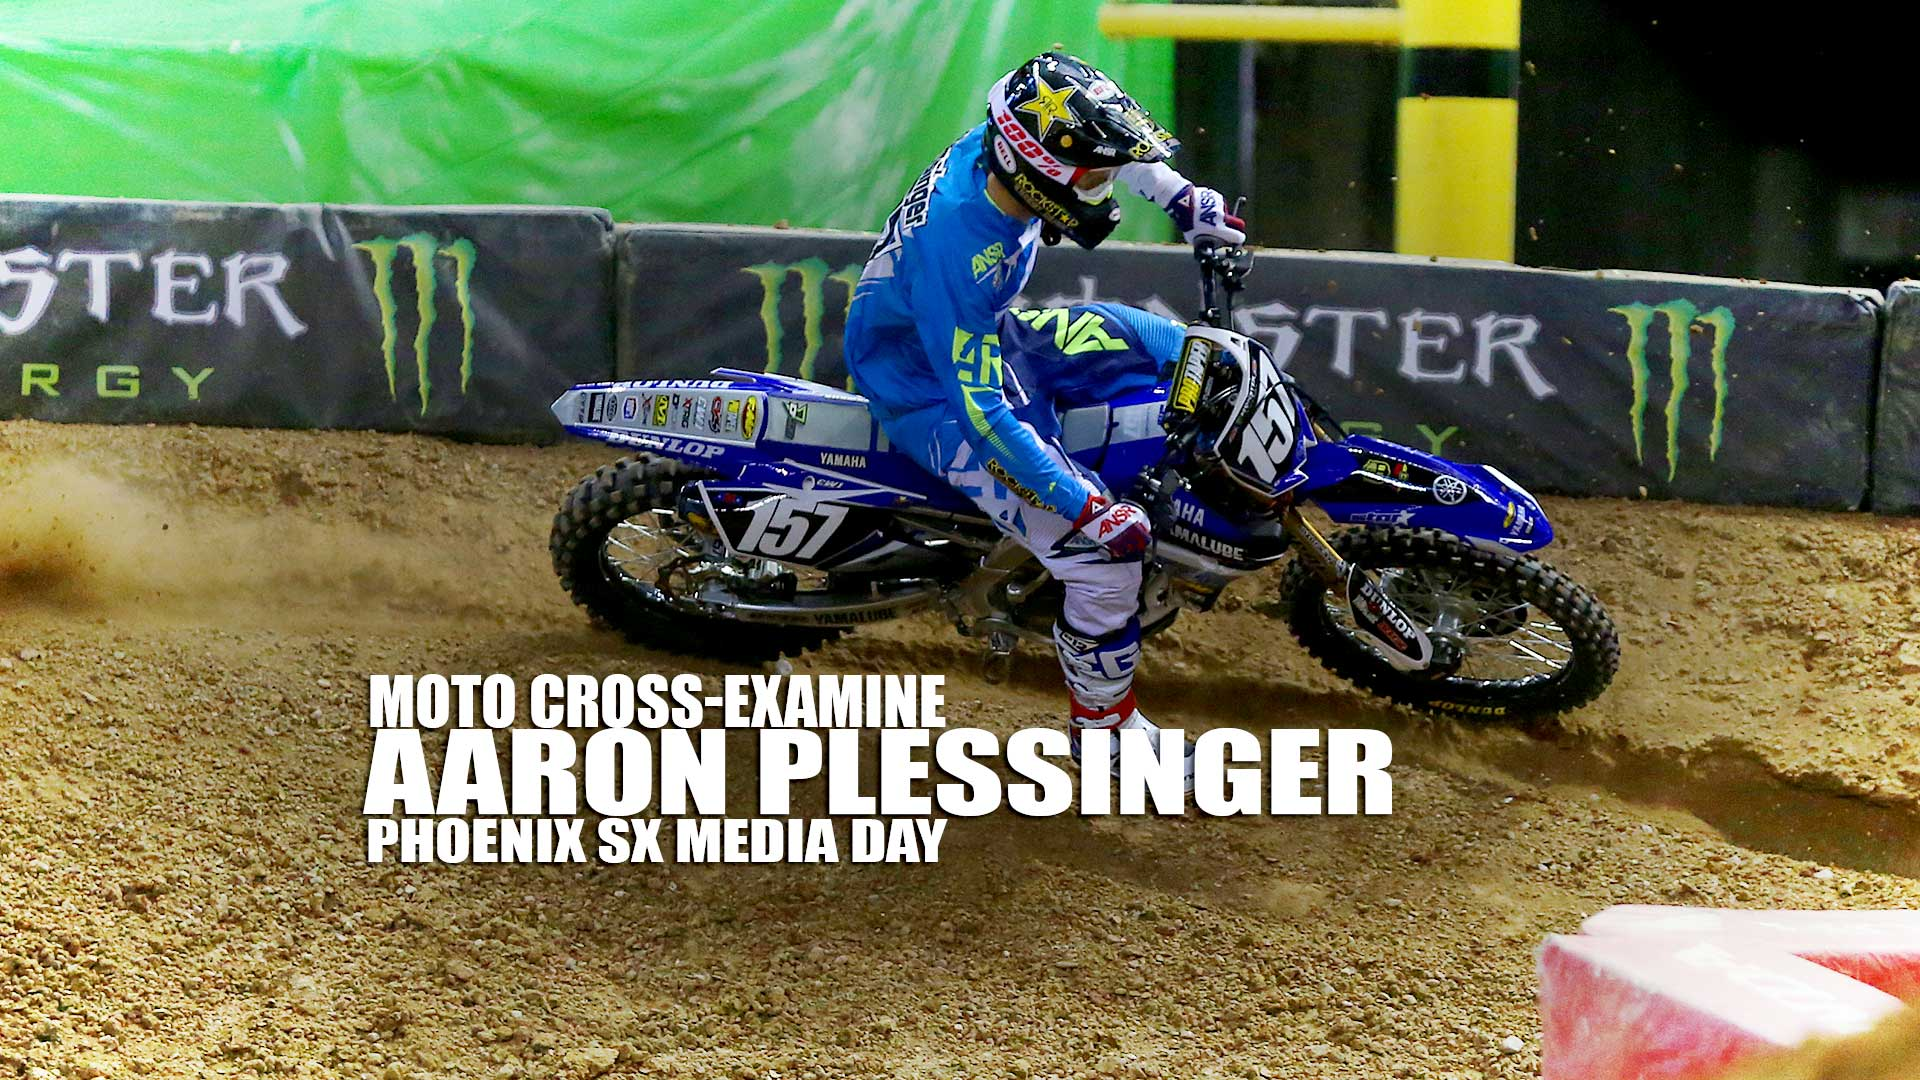 Moto Cross-Examine: Aaron Plessinger Phoenix SX Media Day